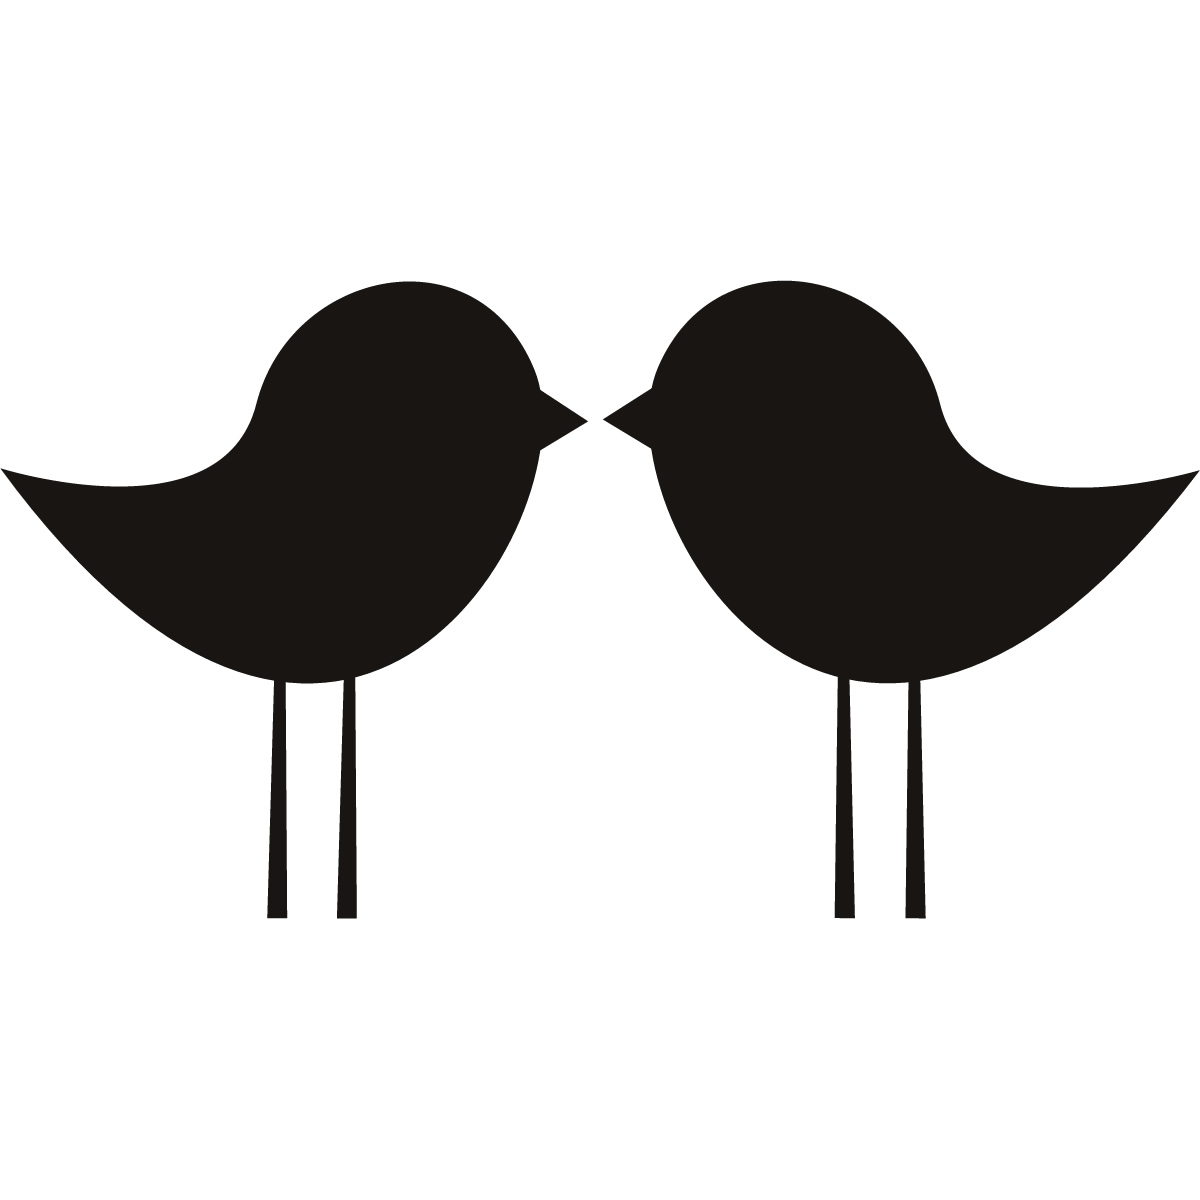 Love Birds Kissing Silhouette.